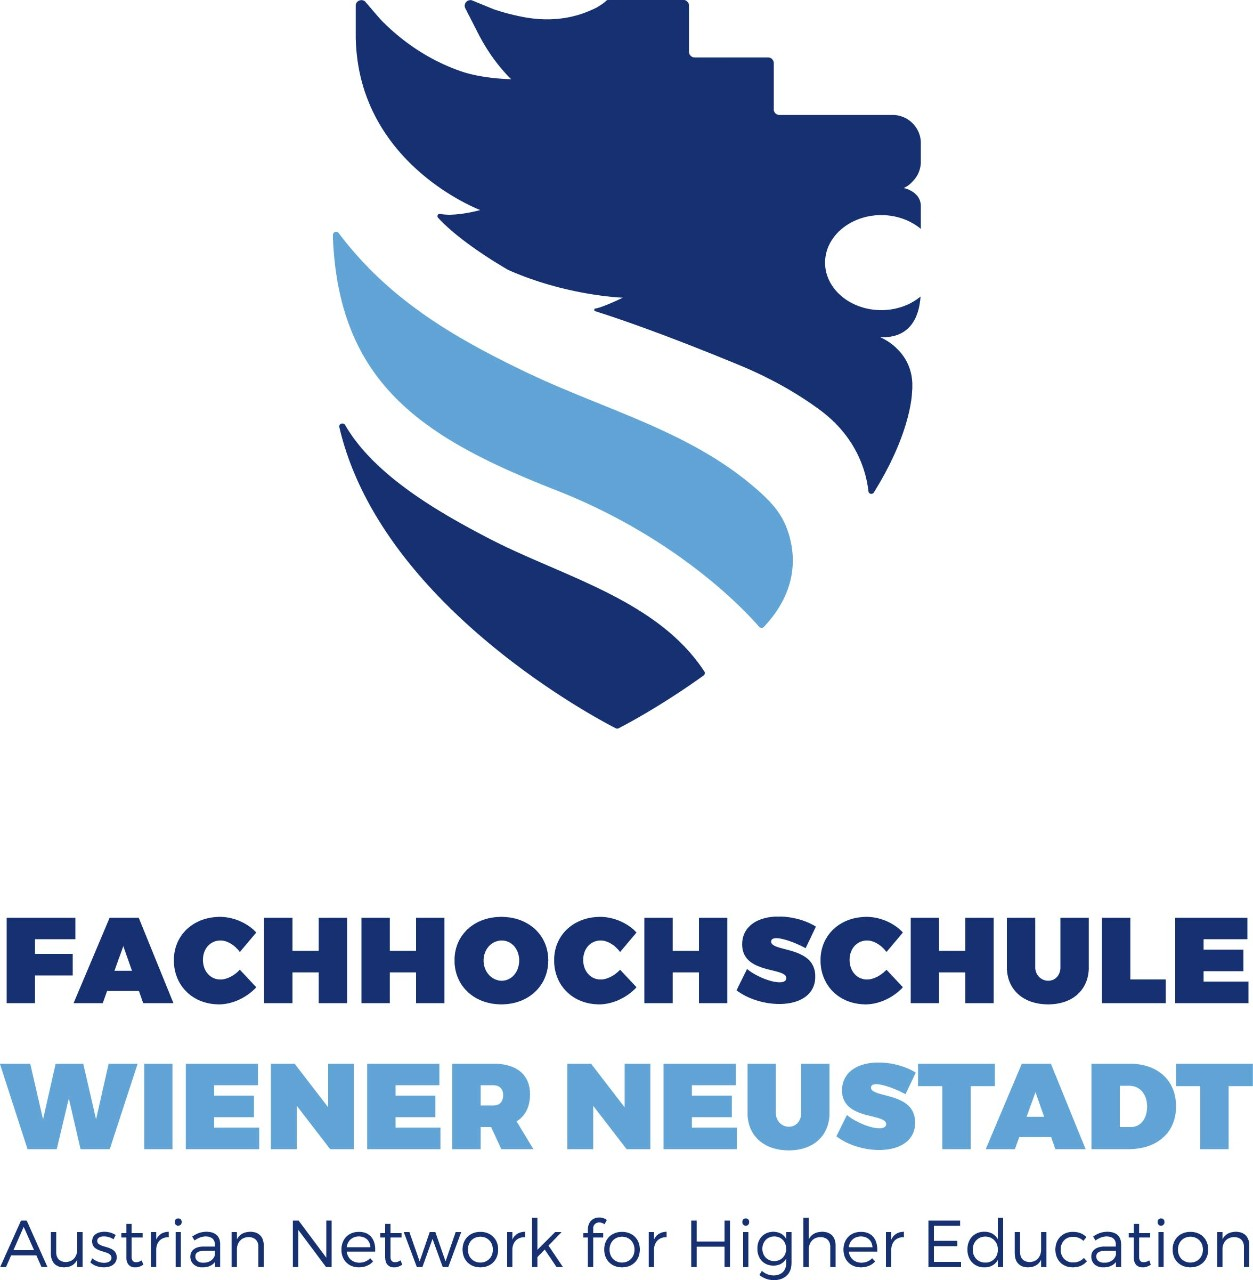 Logotipo de la University of Applied Sciences de Wiener Neustadt